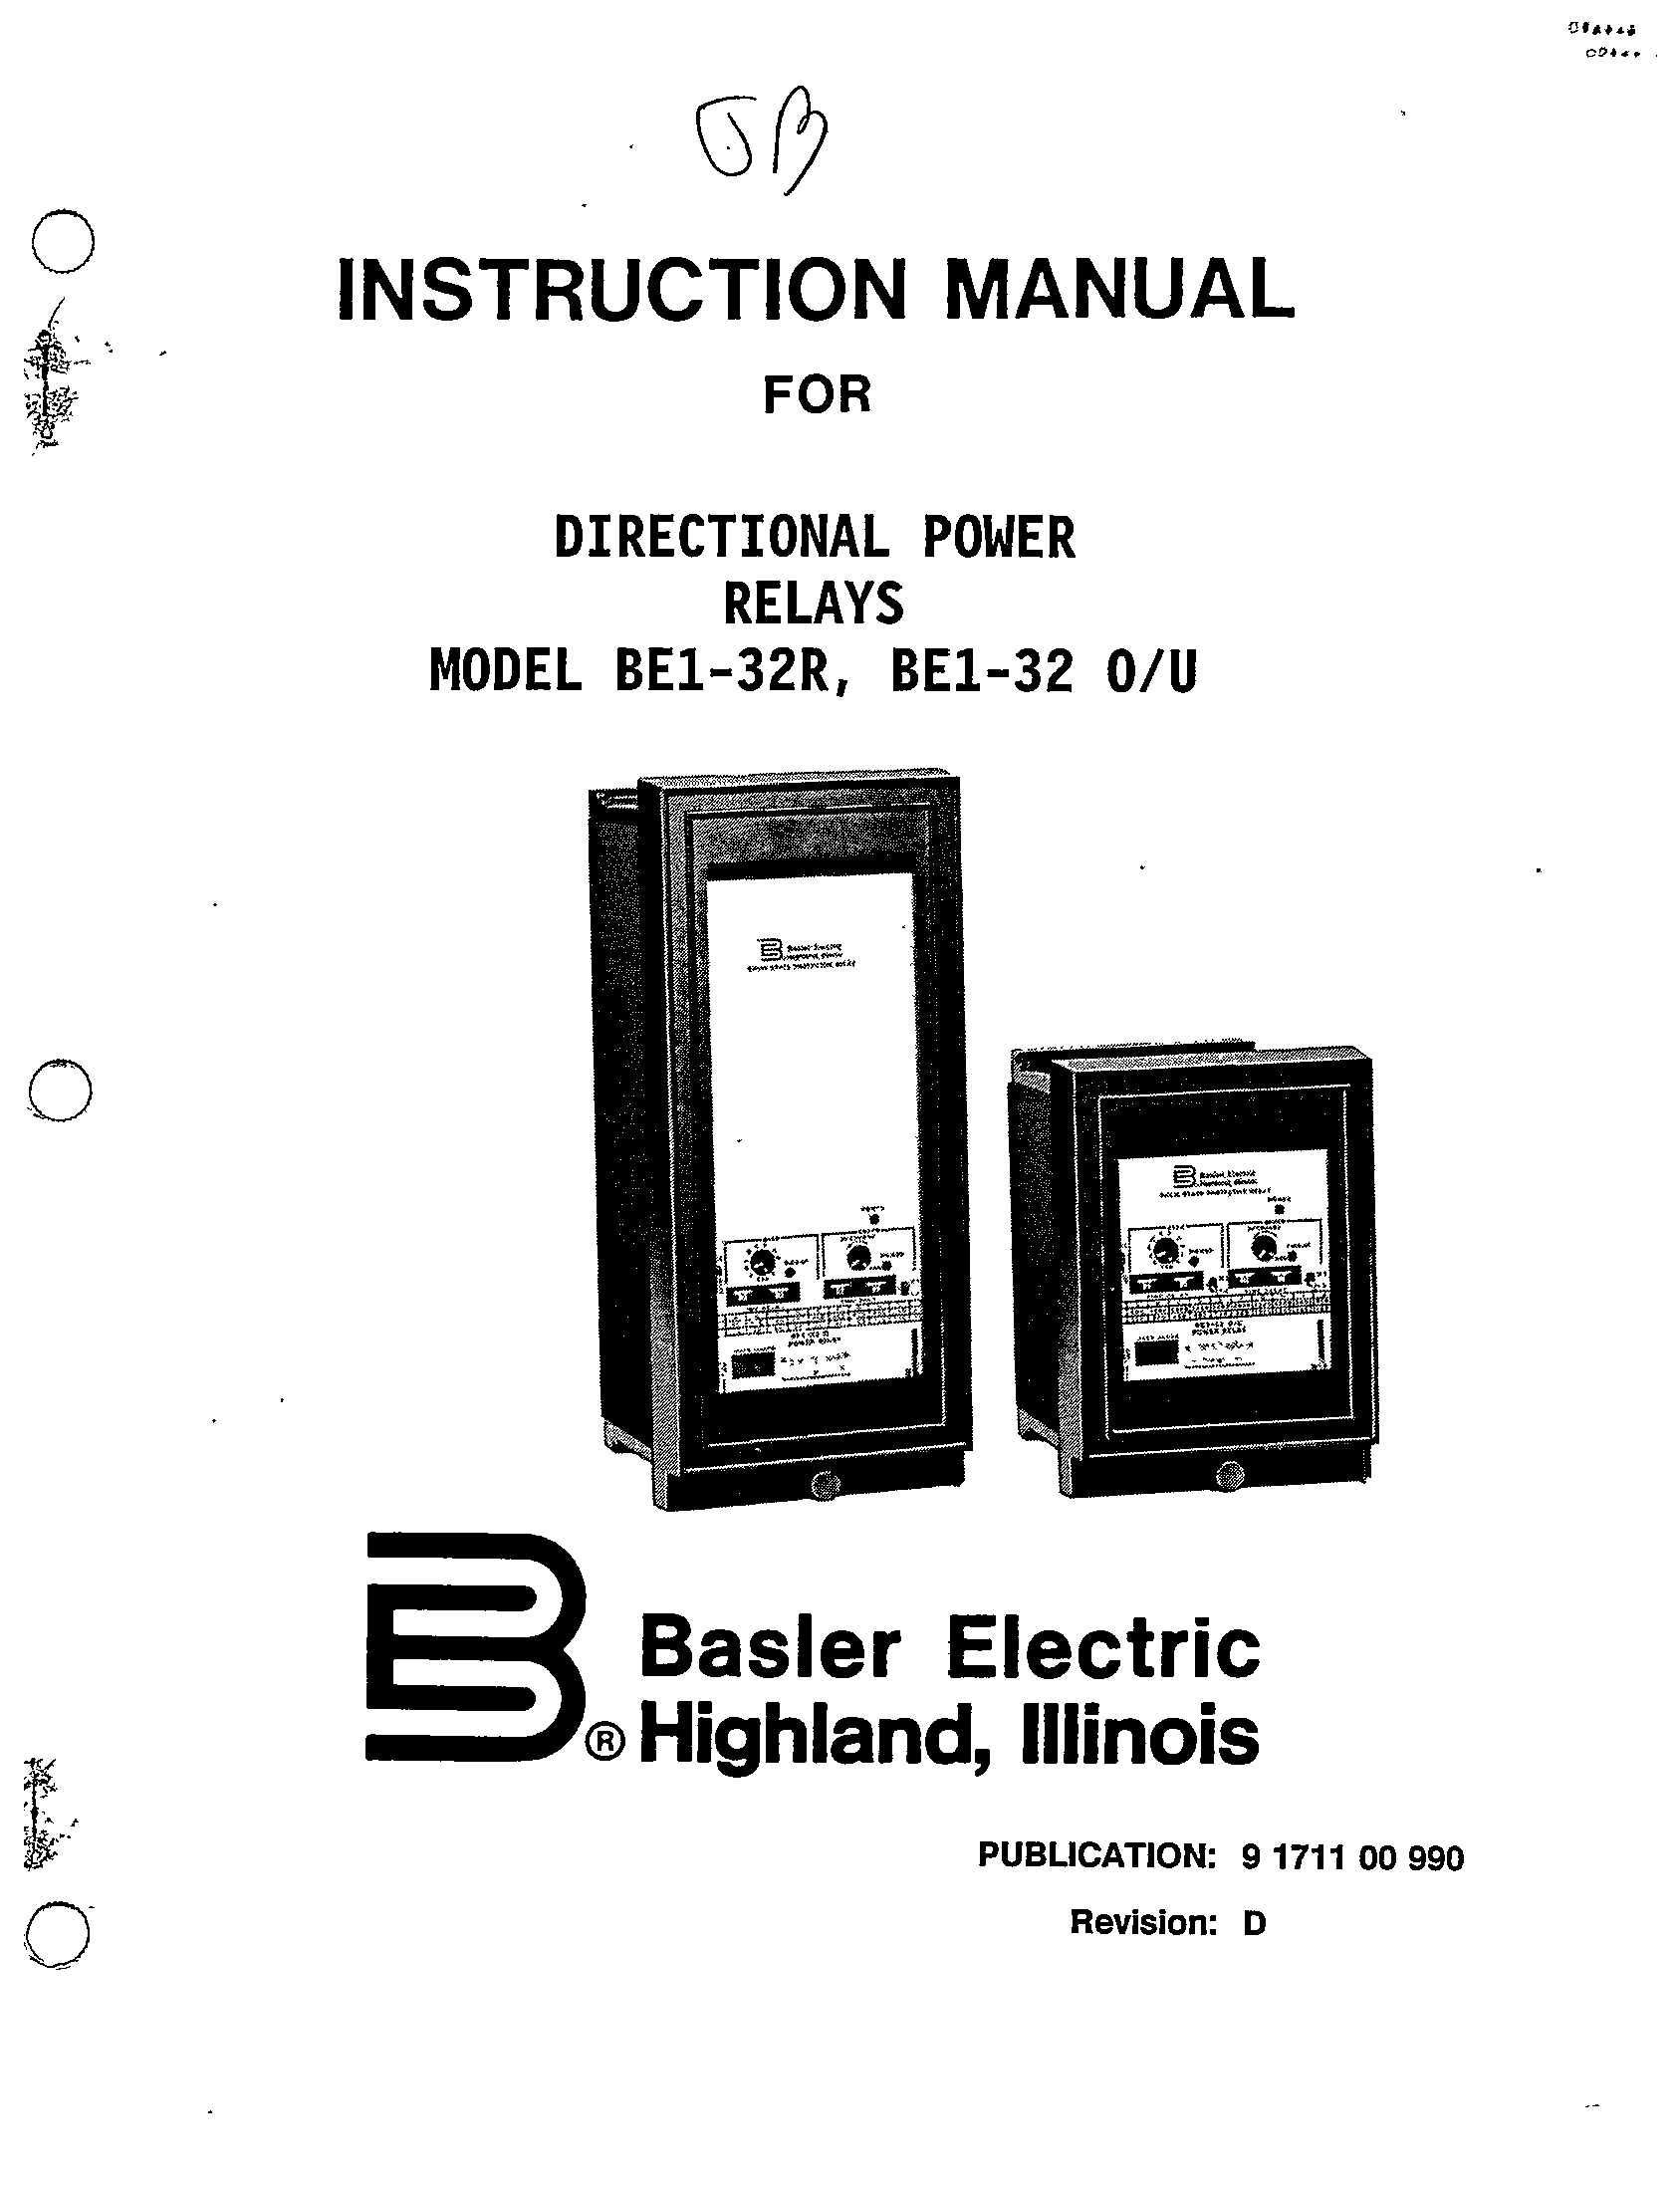 DIRECTIONAL POWER RELAYS MODEL BE1-32R, BE1-32 O-U MANUAL